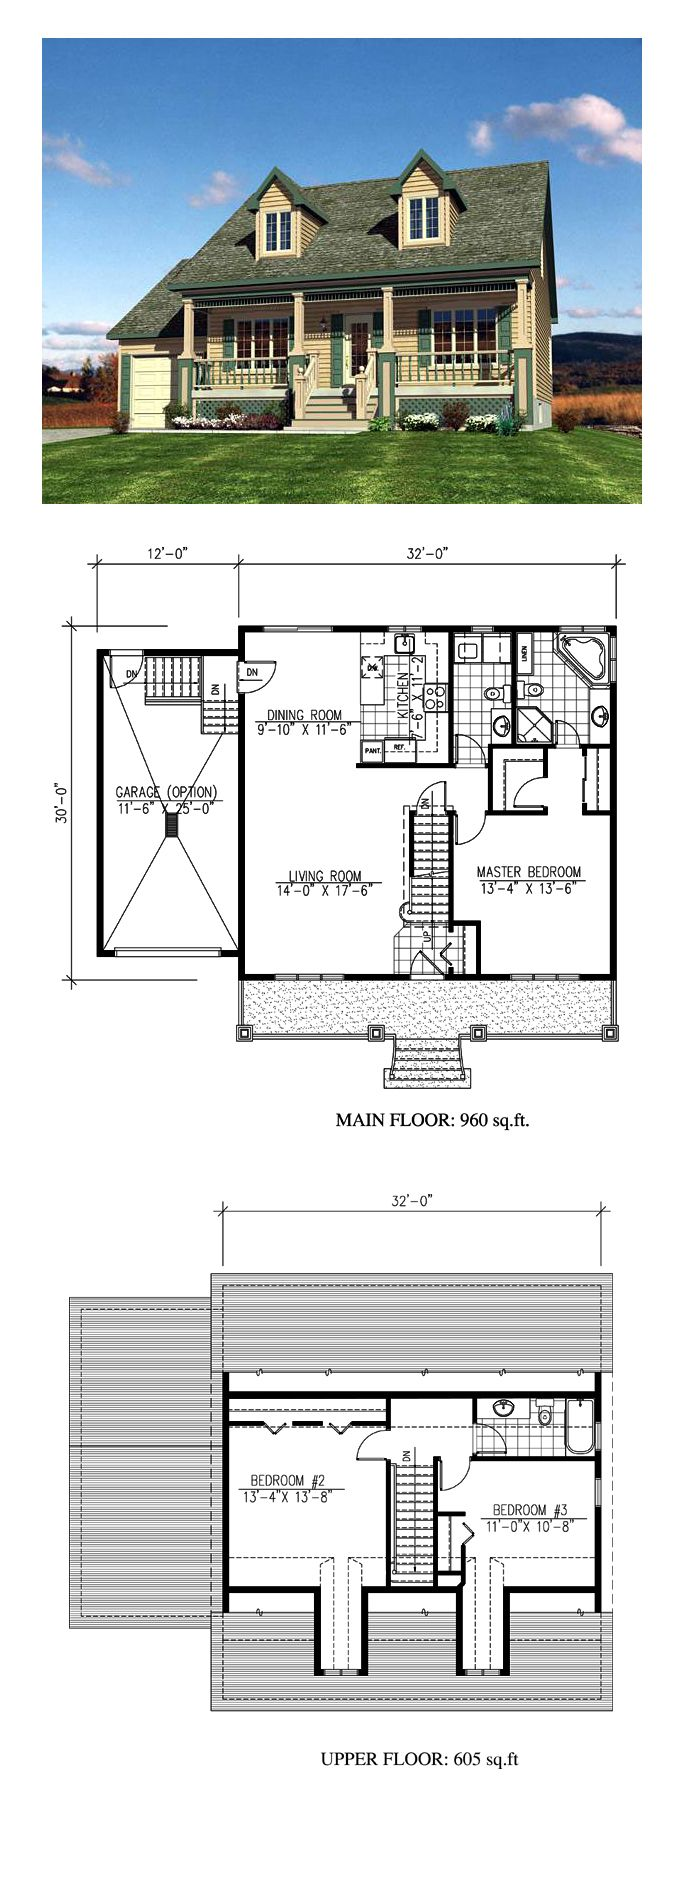 Narrow Lot Style House Plan 48171 With 3 Bed 2 Bath 1 Car Garage Cape Cod House Plans Basement House Plans Small House Plans